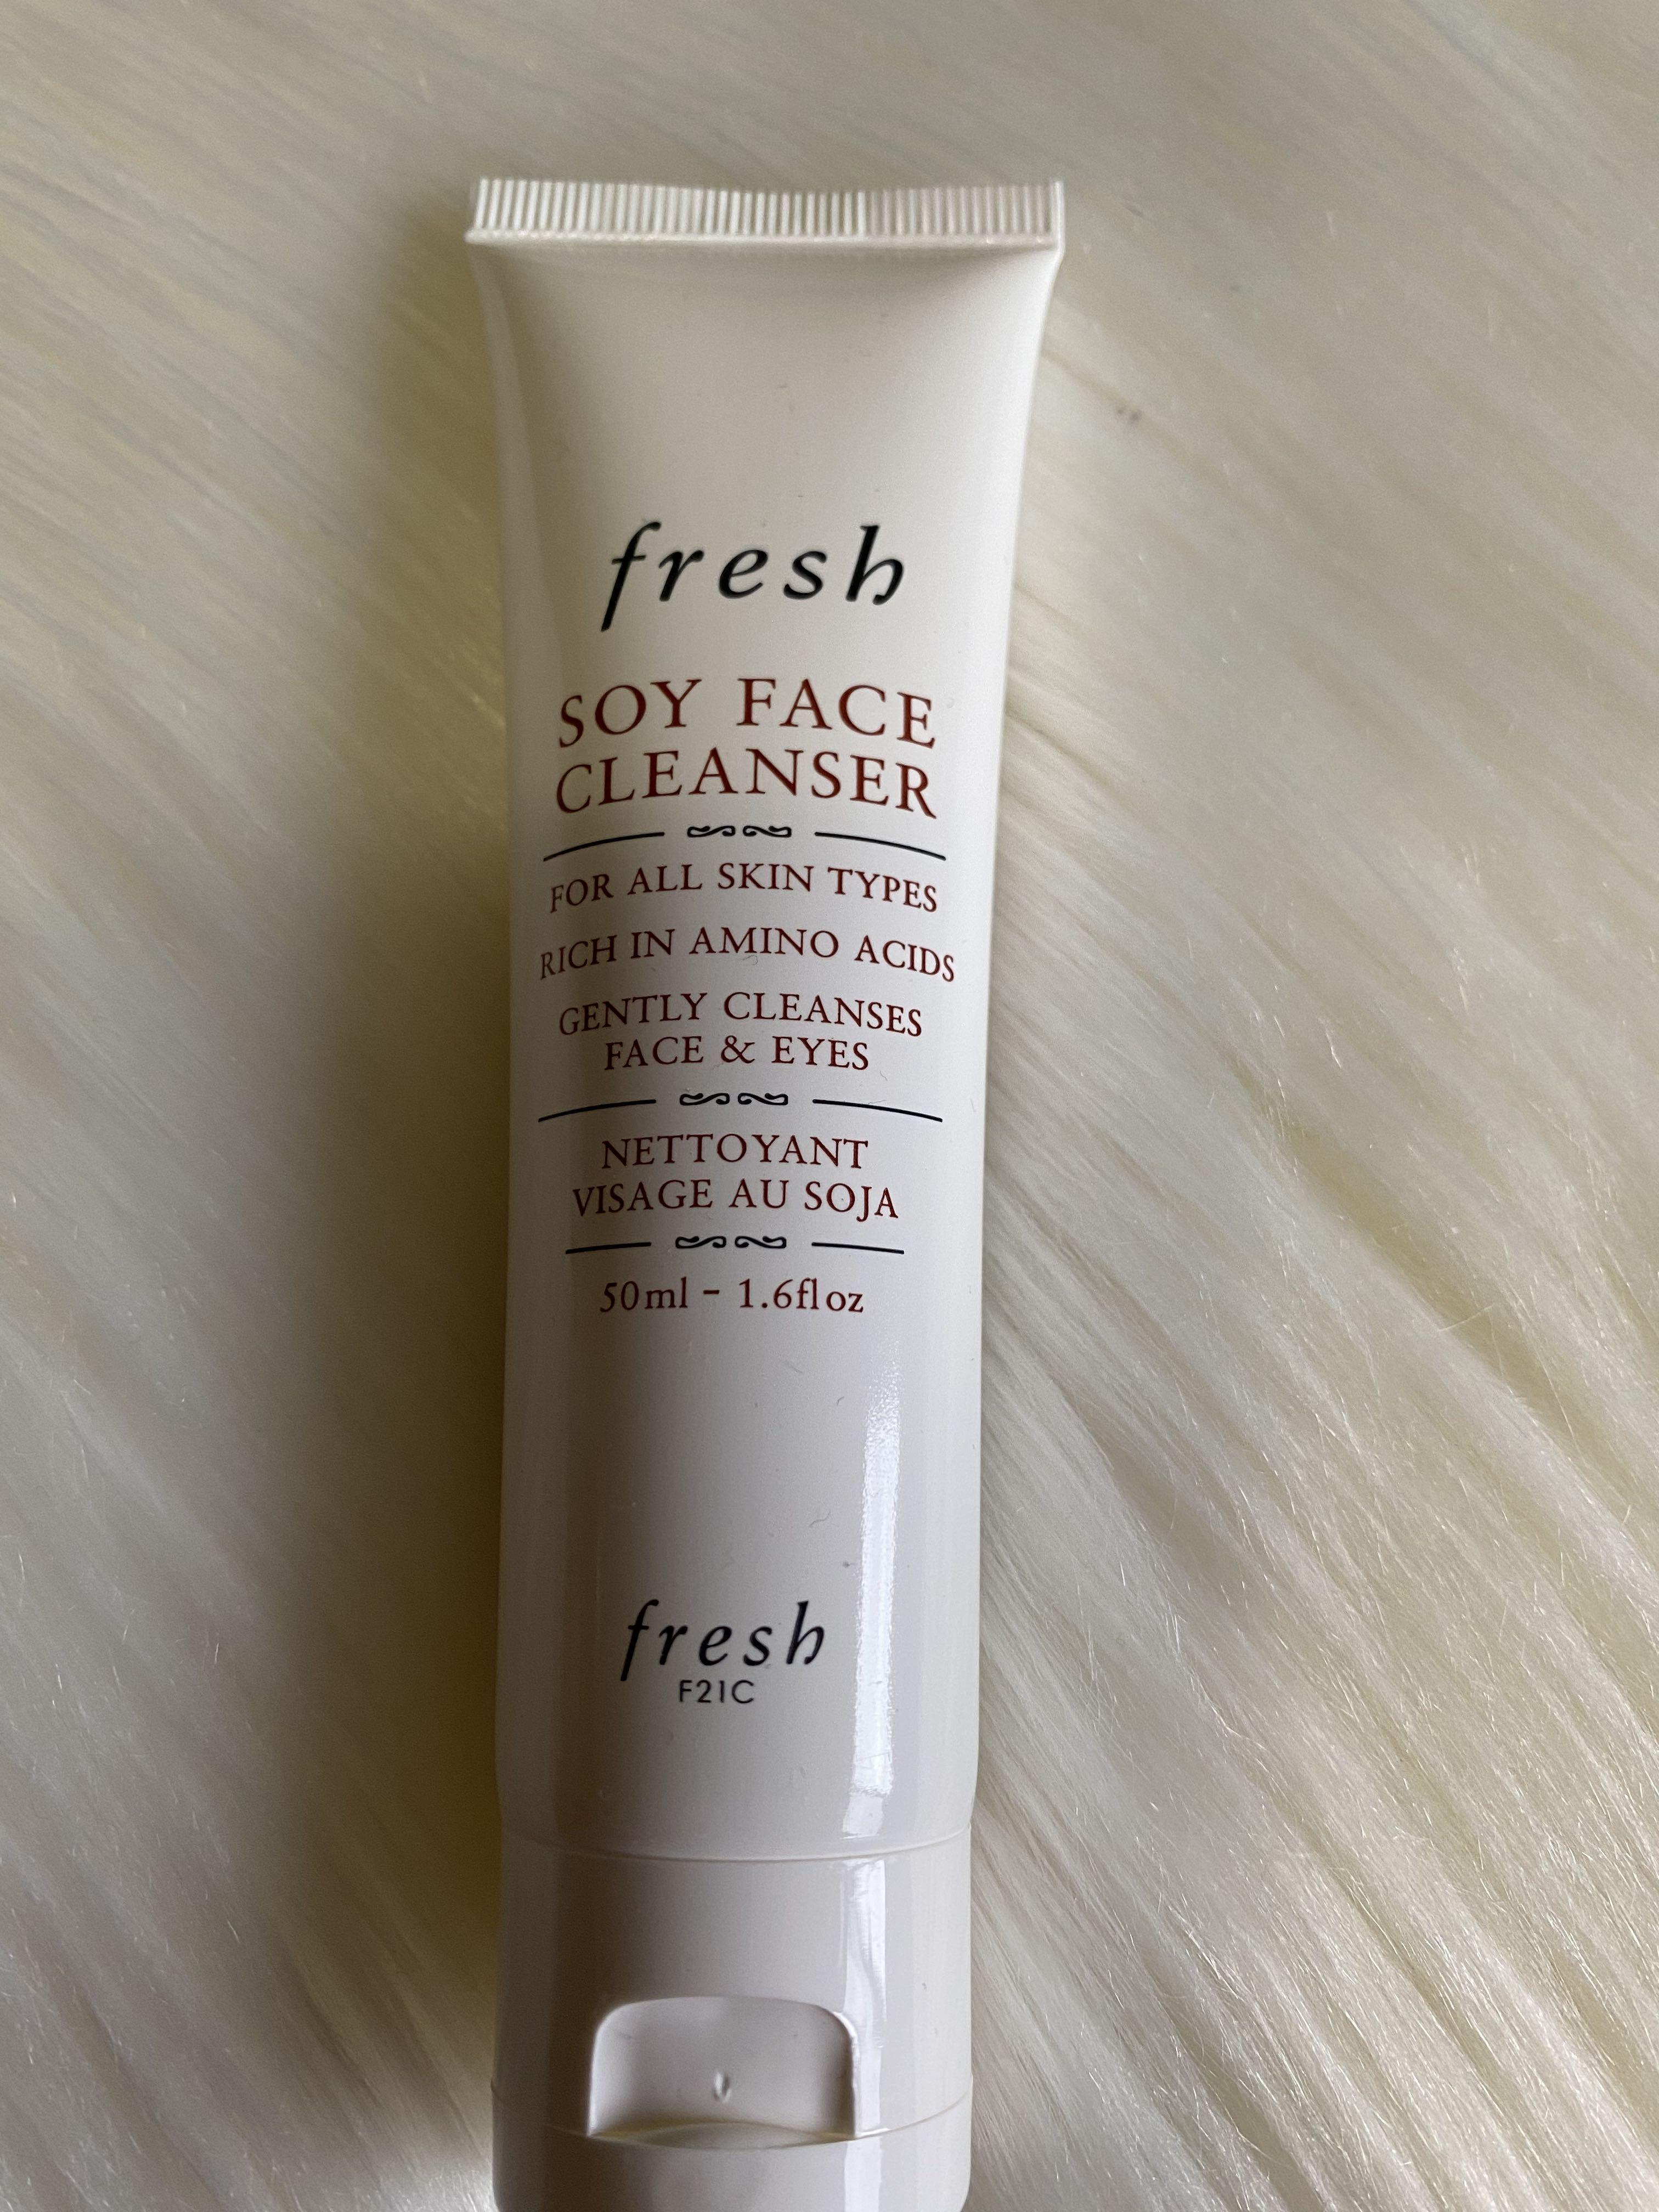 FRESH SOY FACE CLEANSERS